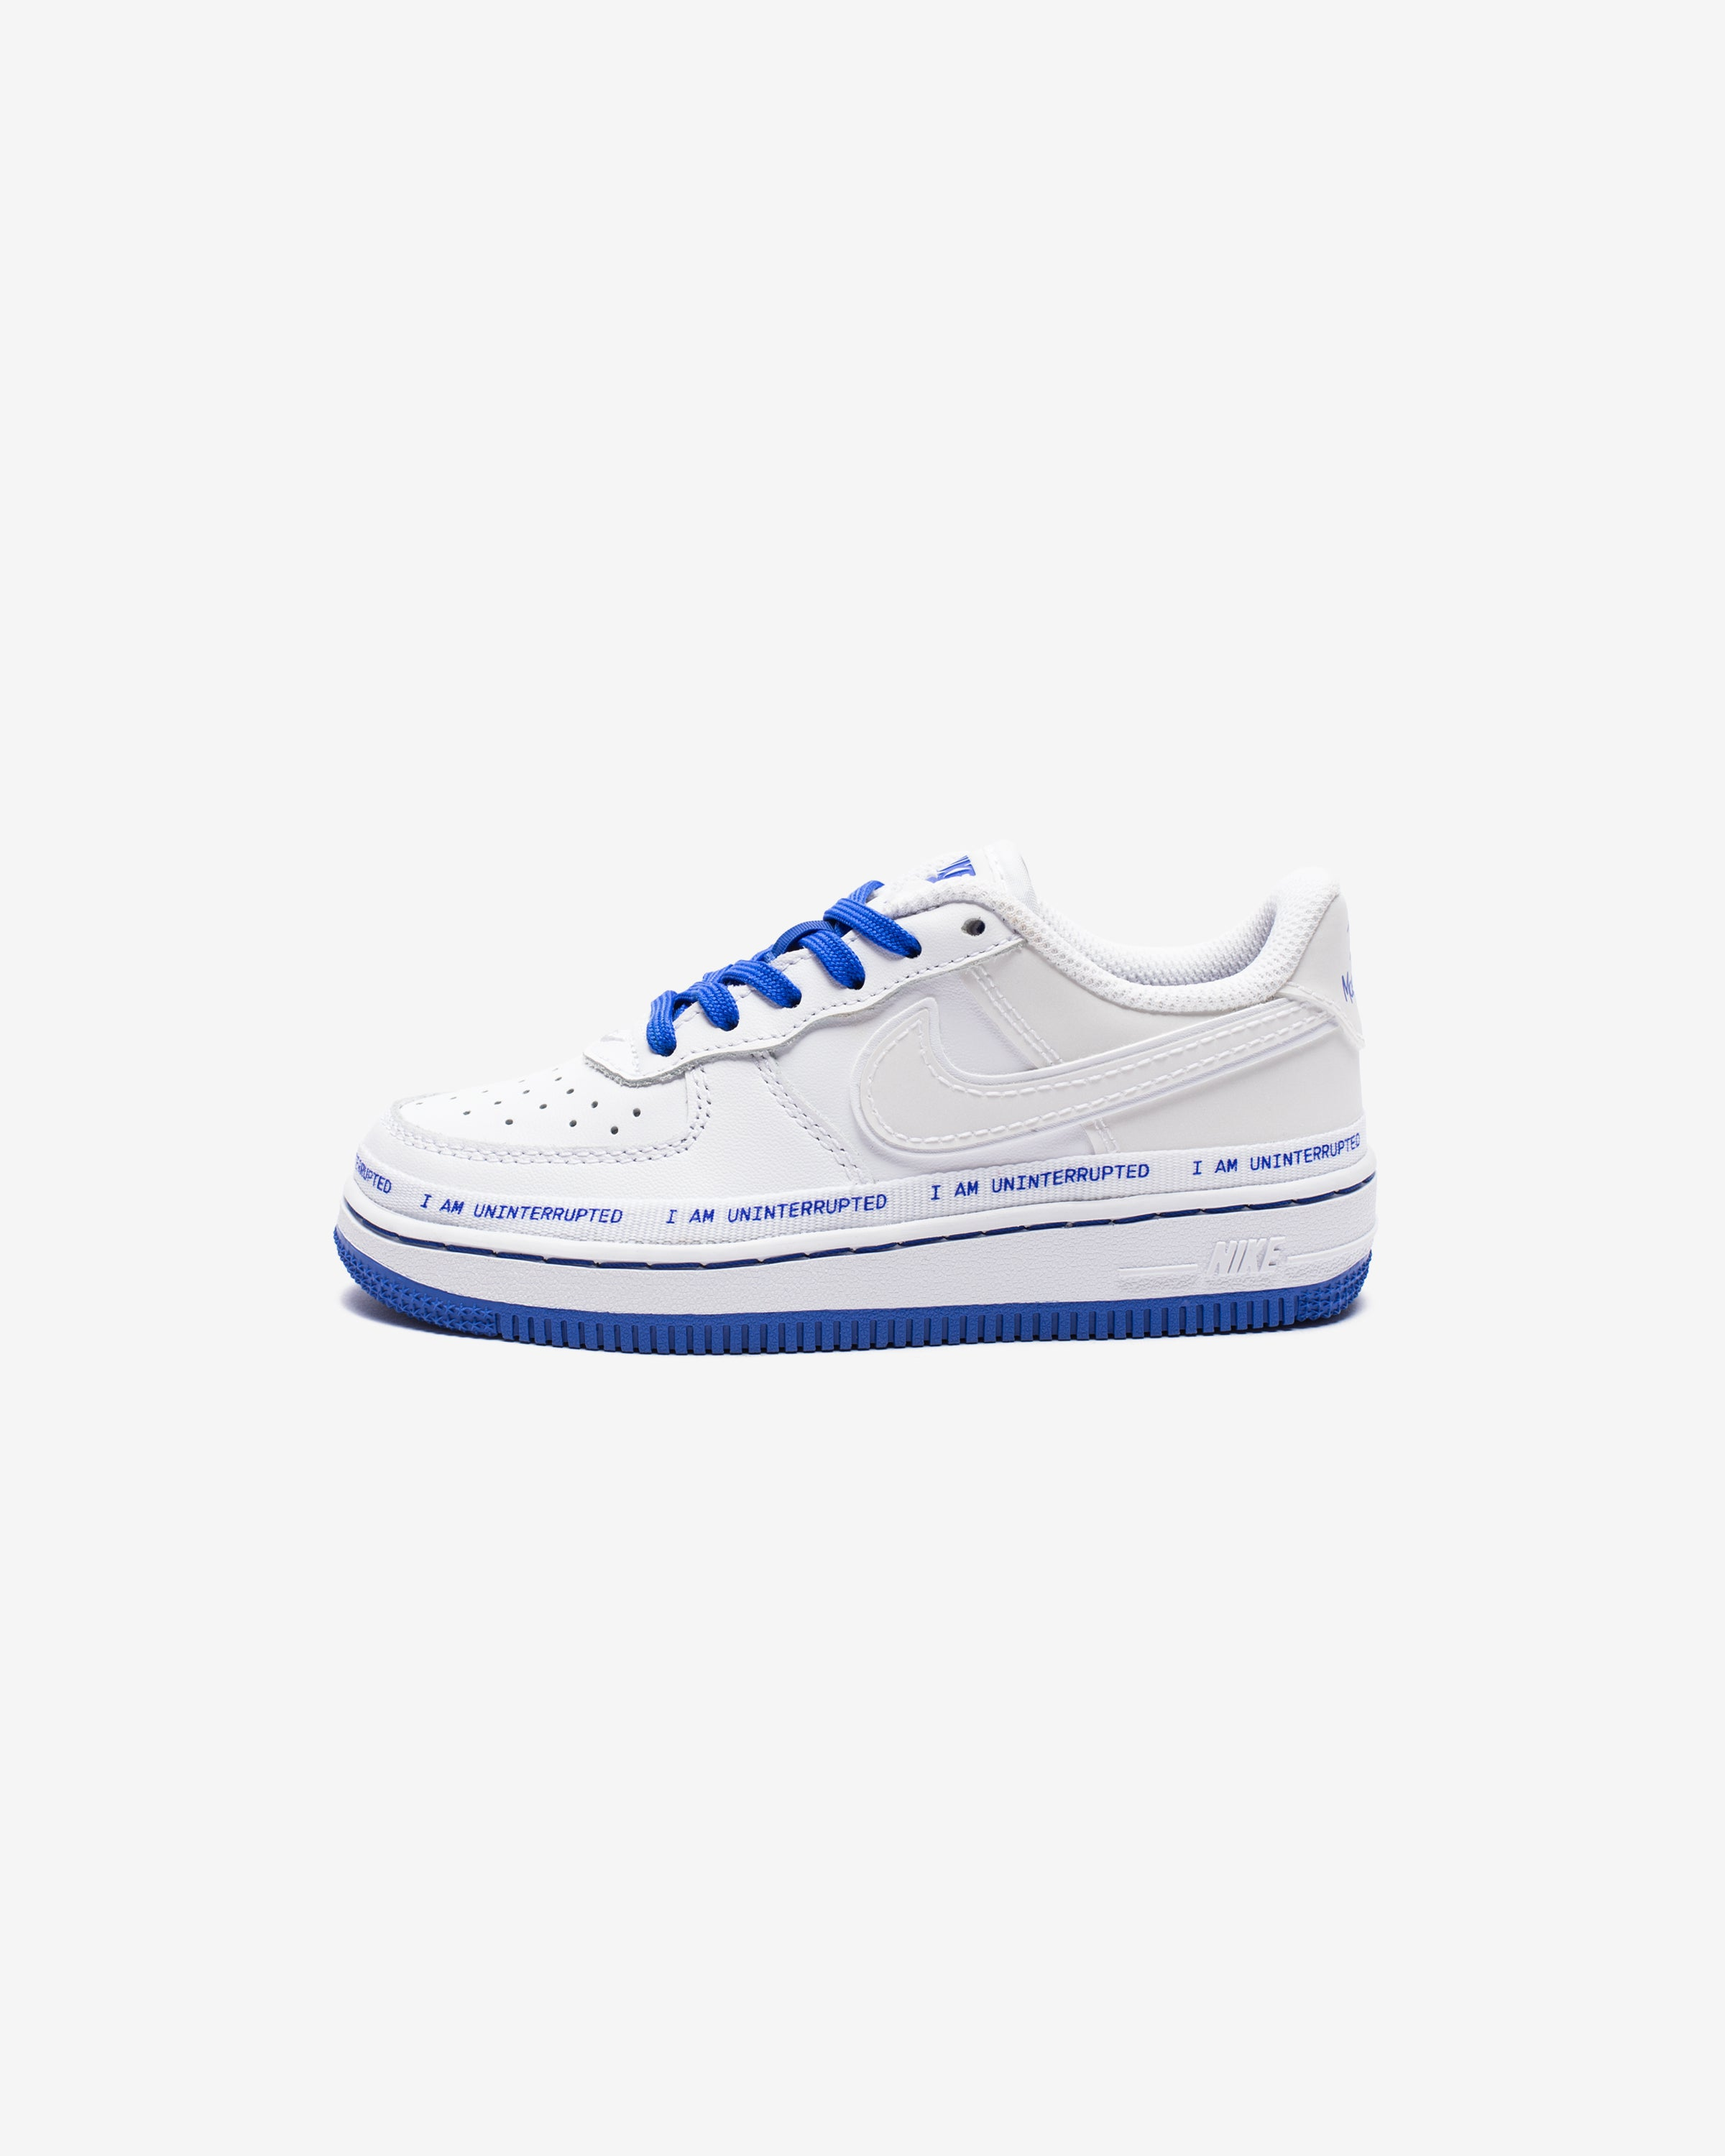 NIKE X UNINTERRUPTED PS AIR FORCE 1 '07 QS - WHITE/RACERBLUE